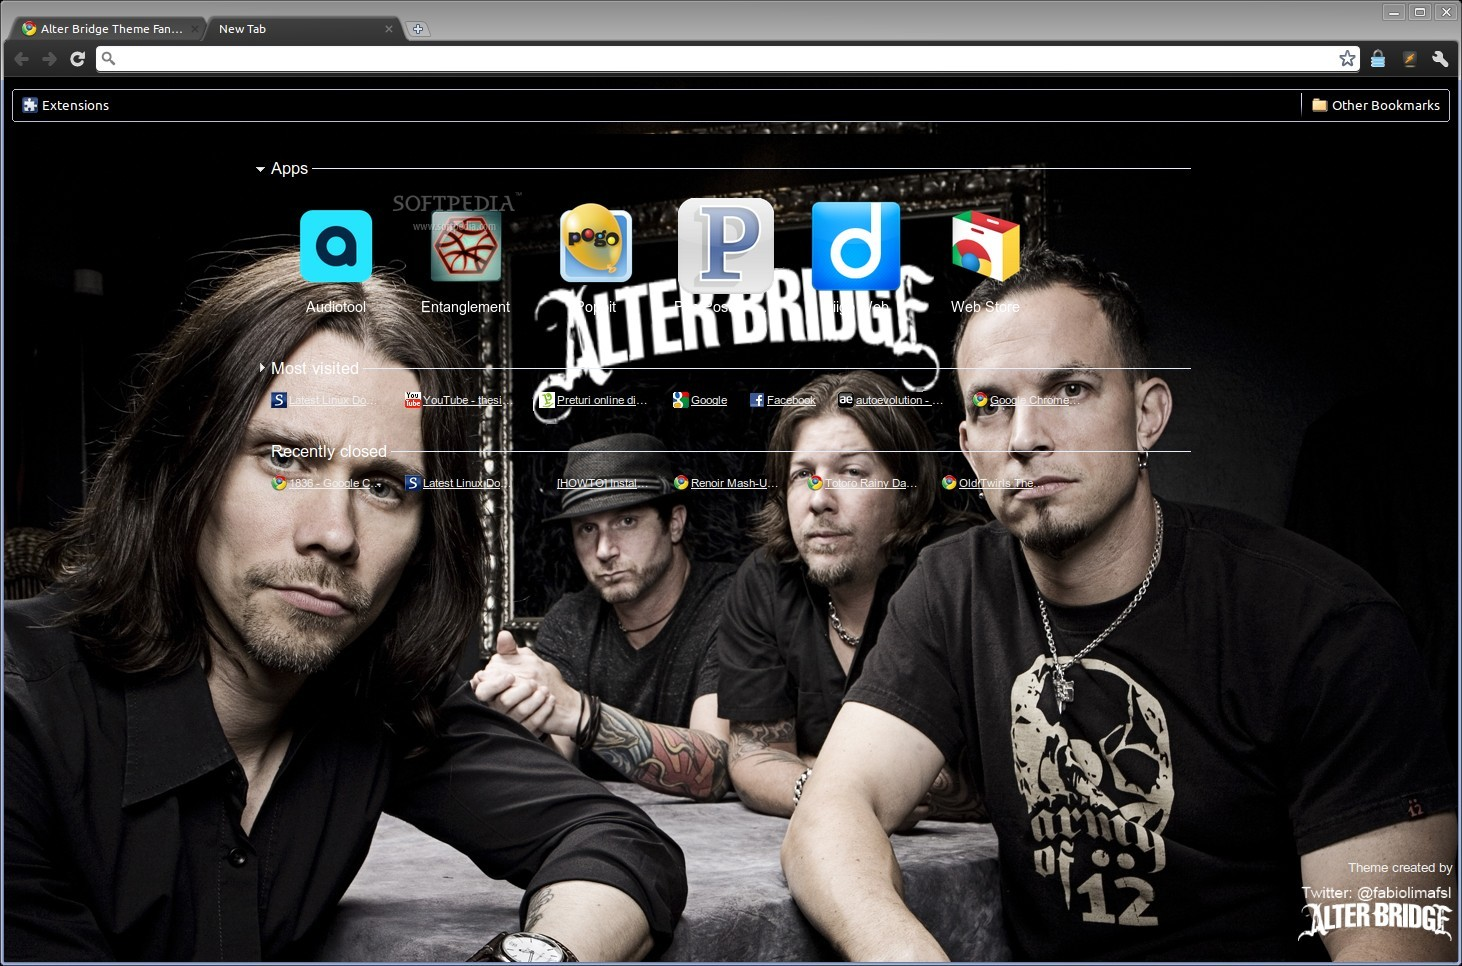 Alter Bridge Theme Fan Brazil screenshot 1